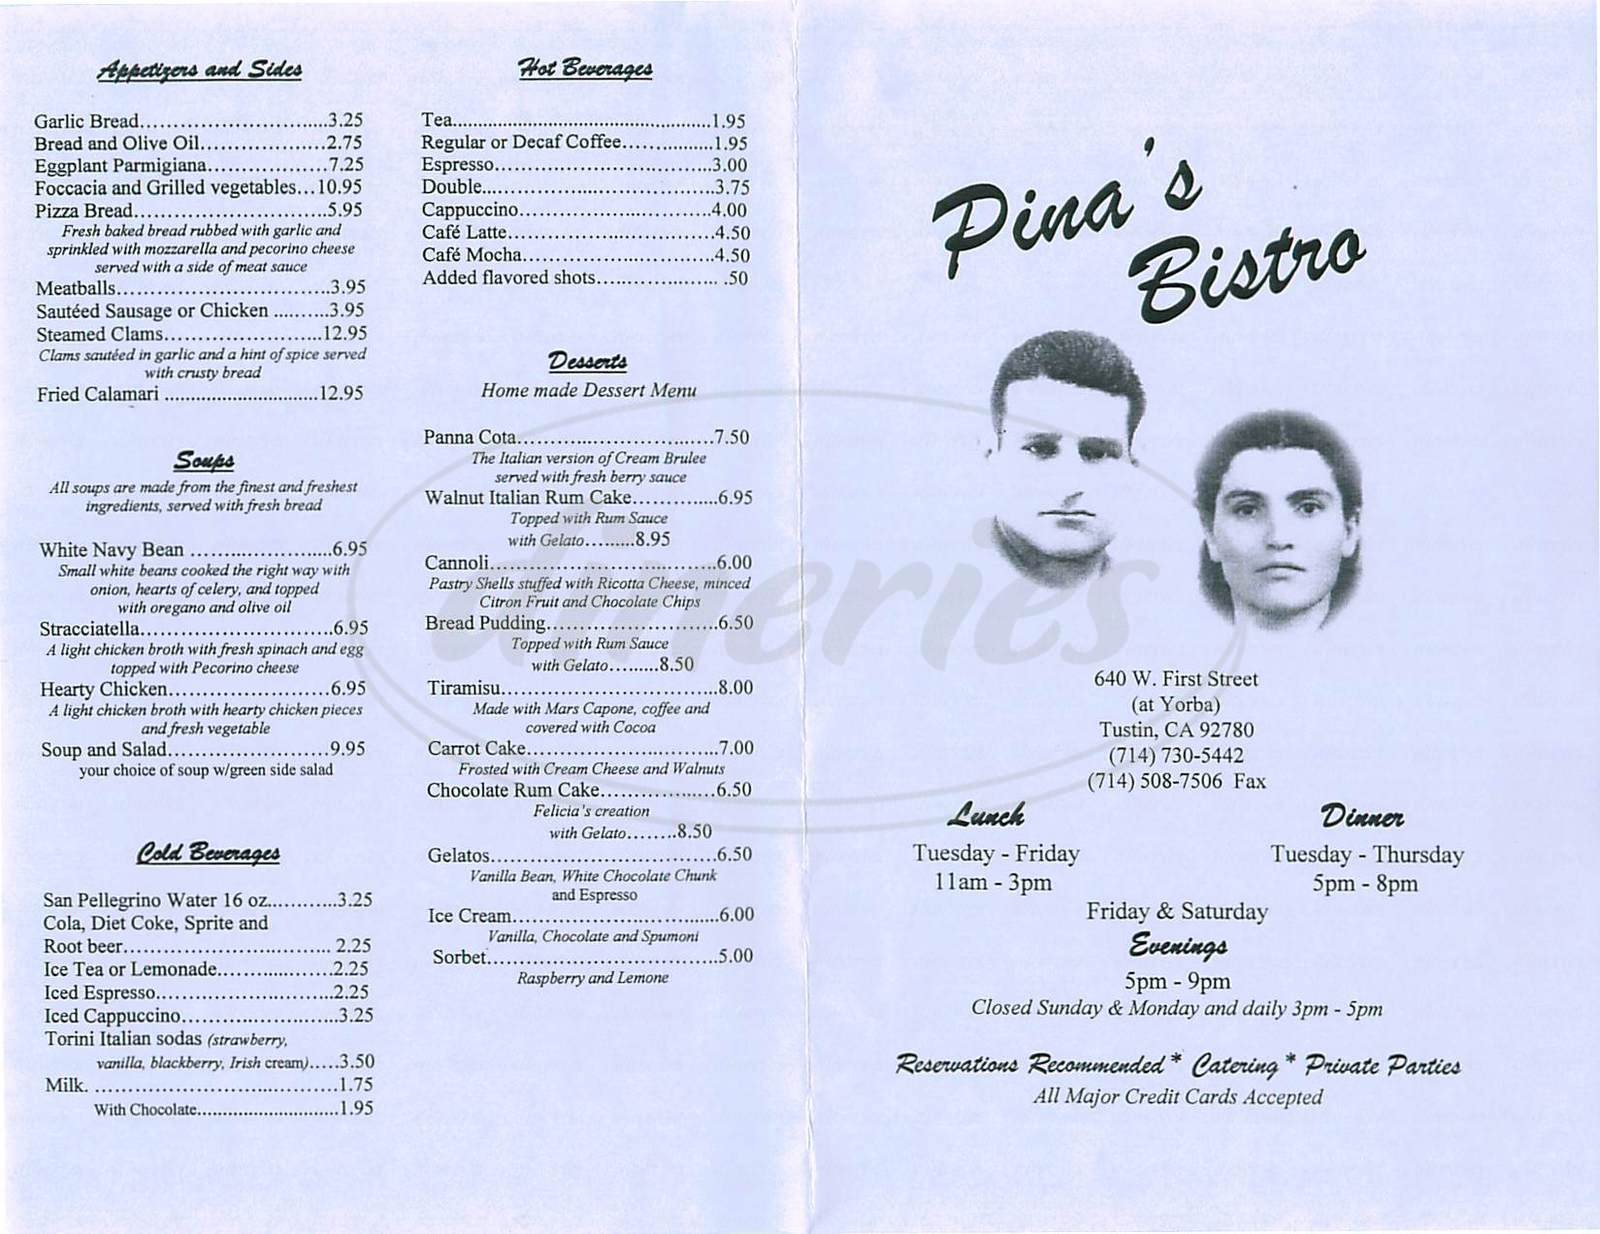 menu for Pinas Bistro